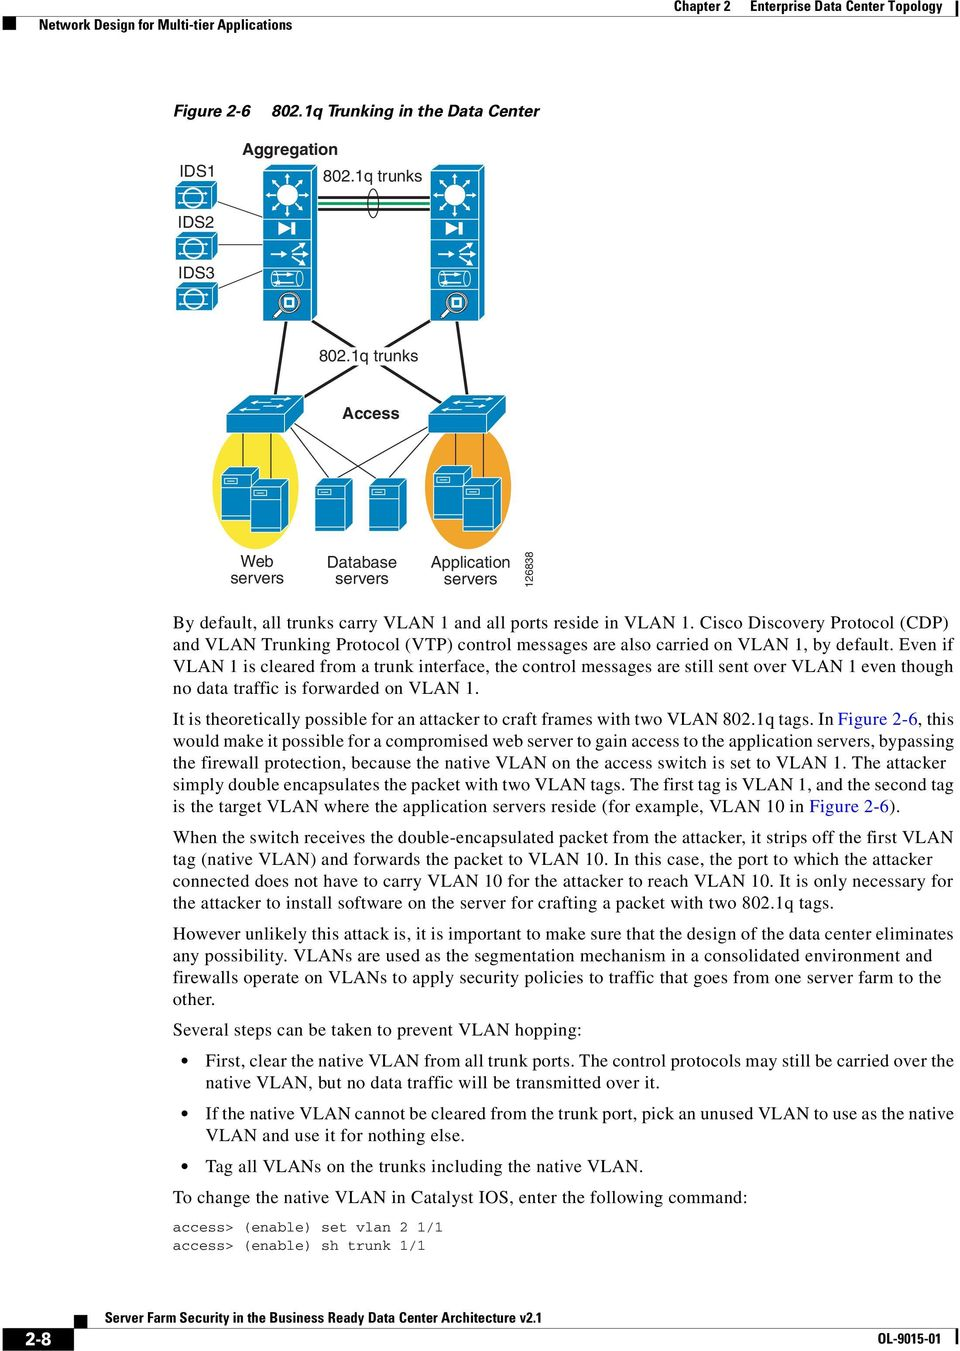 Cisco Discovery Protocol (CDP) and VLAN Trunking Protocol (VTP) control messages are also carried on VLAN 1, by default.